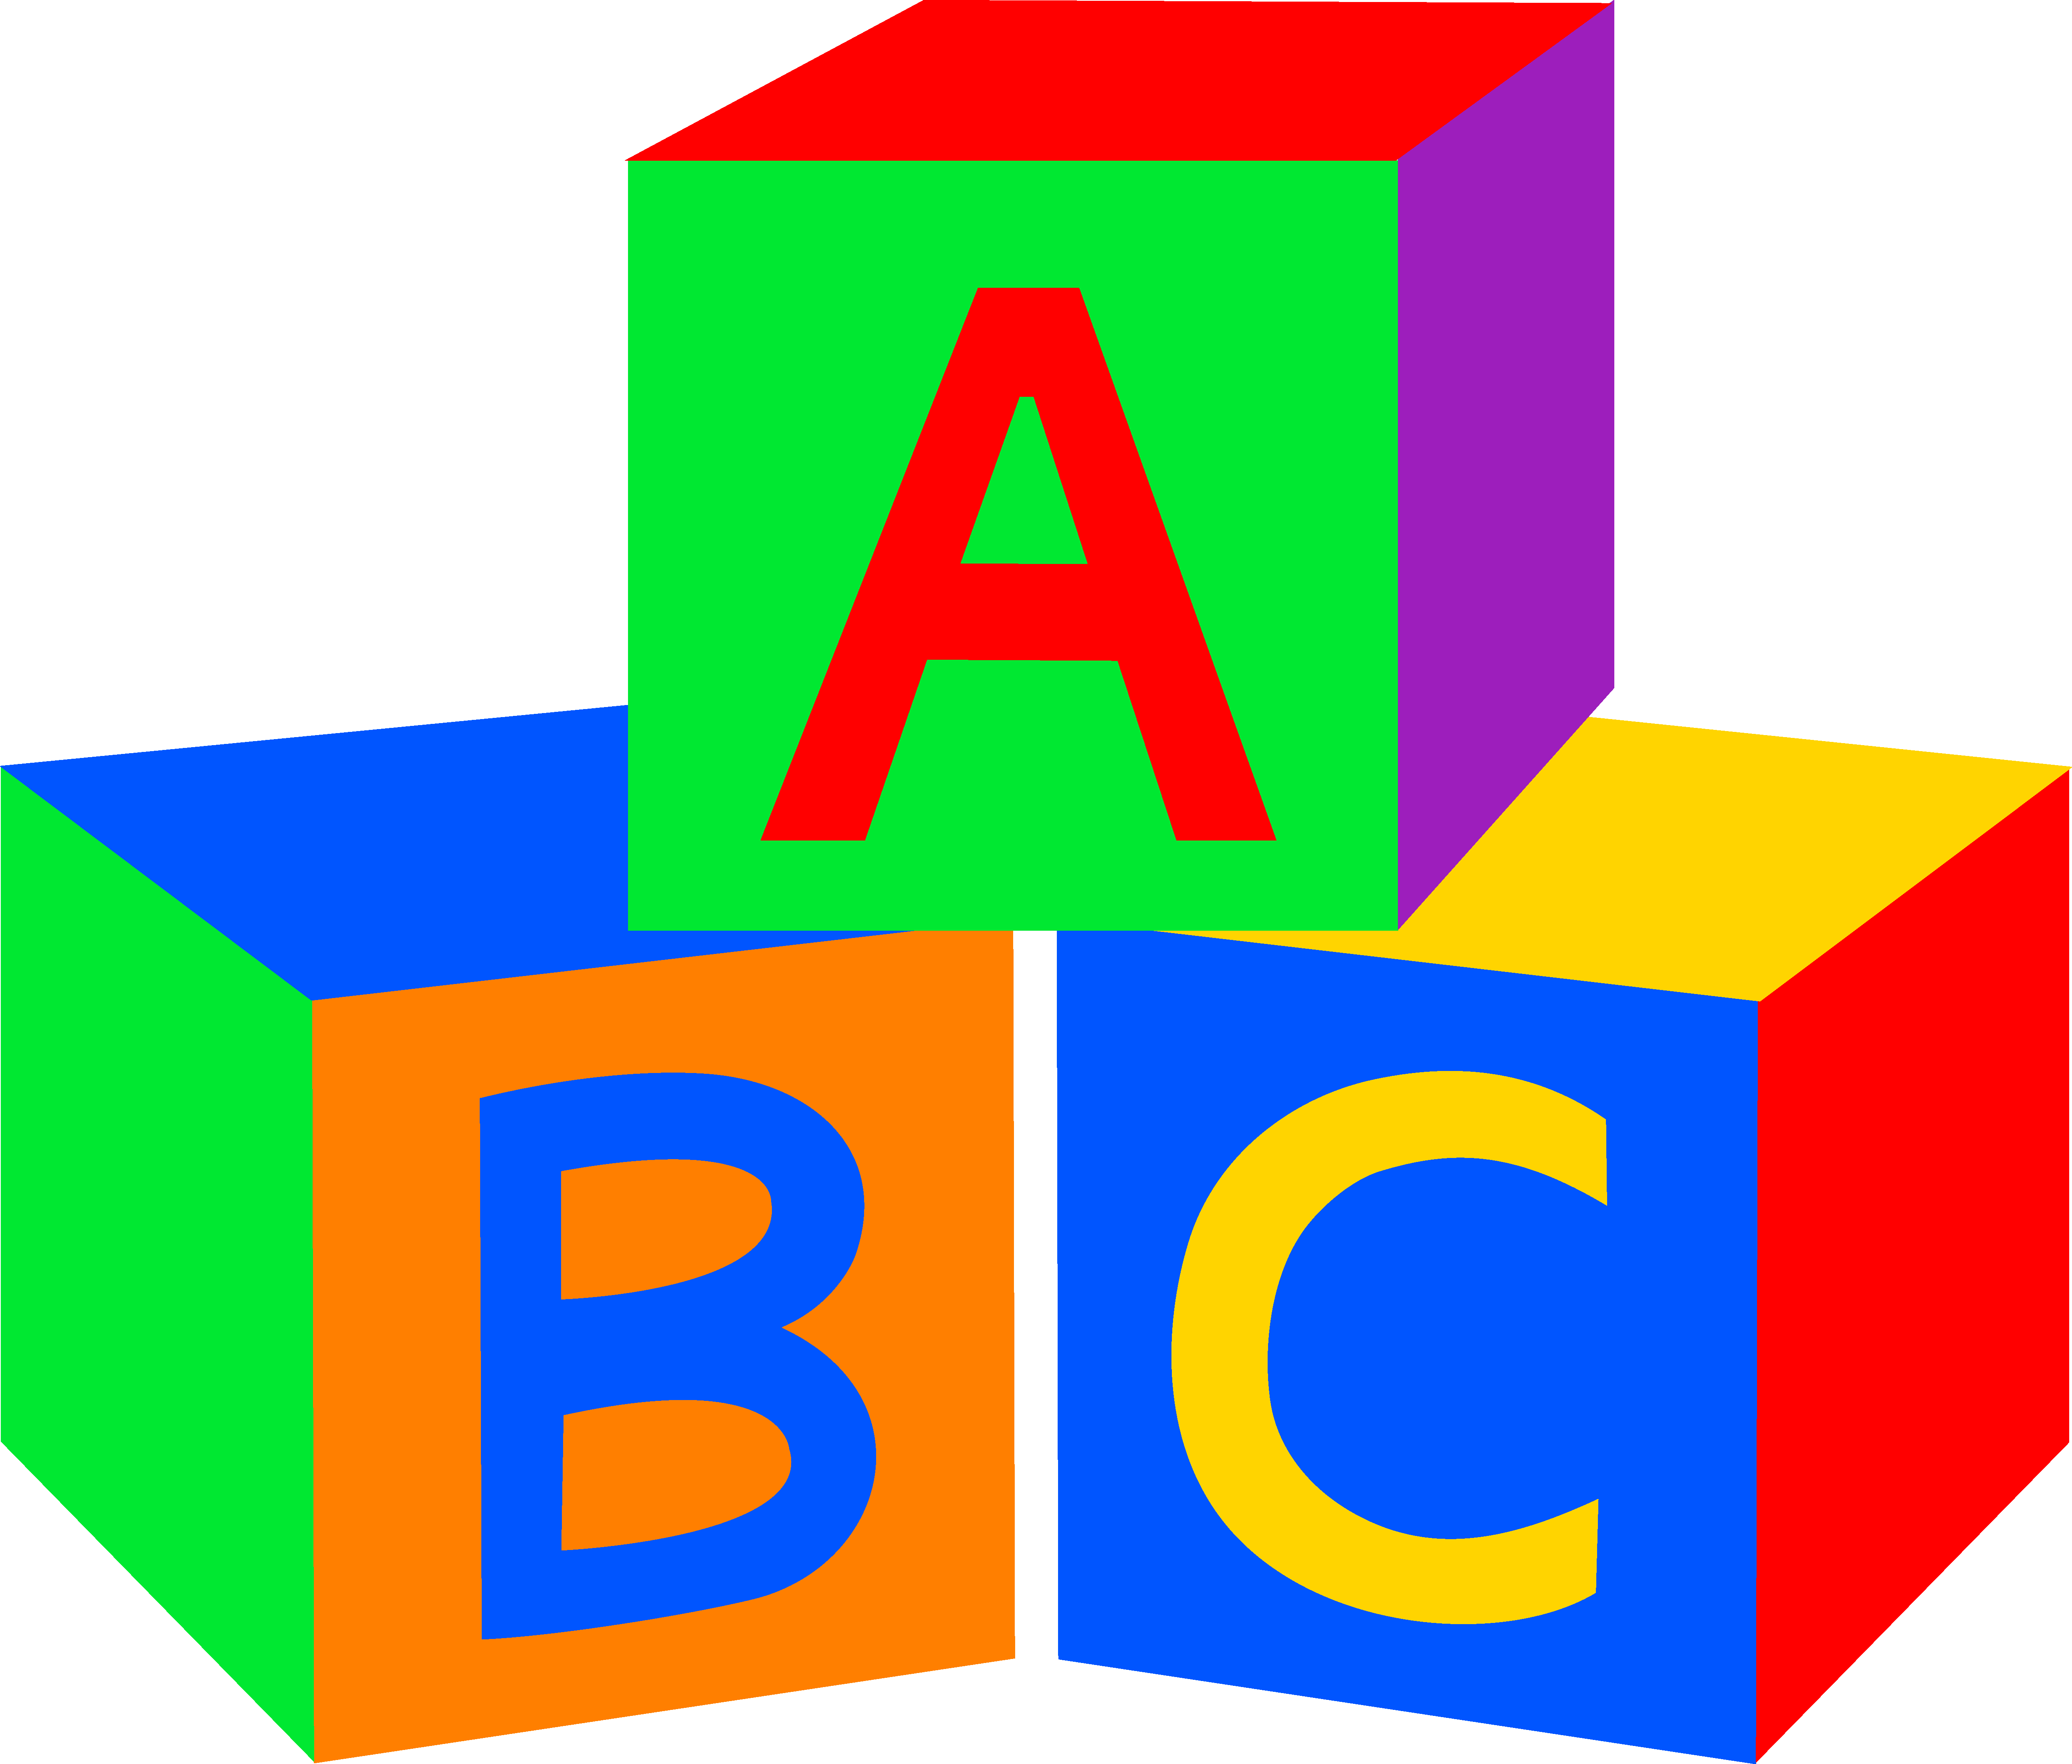 Abc clipart images - ClipartFest clip art royalty free library